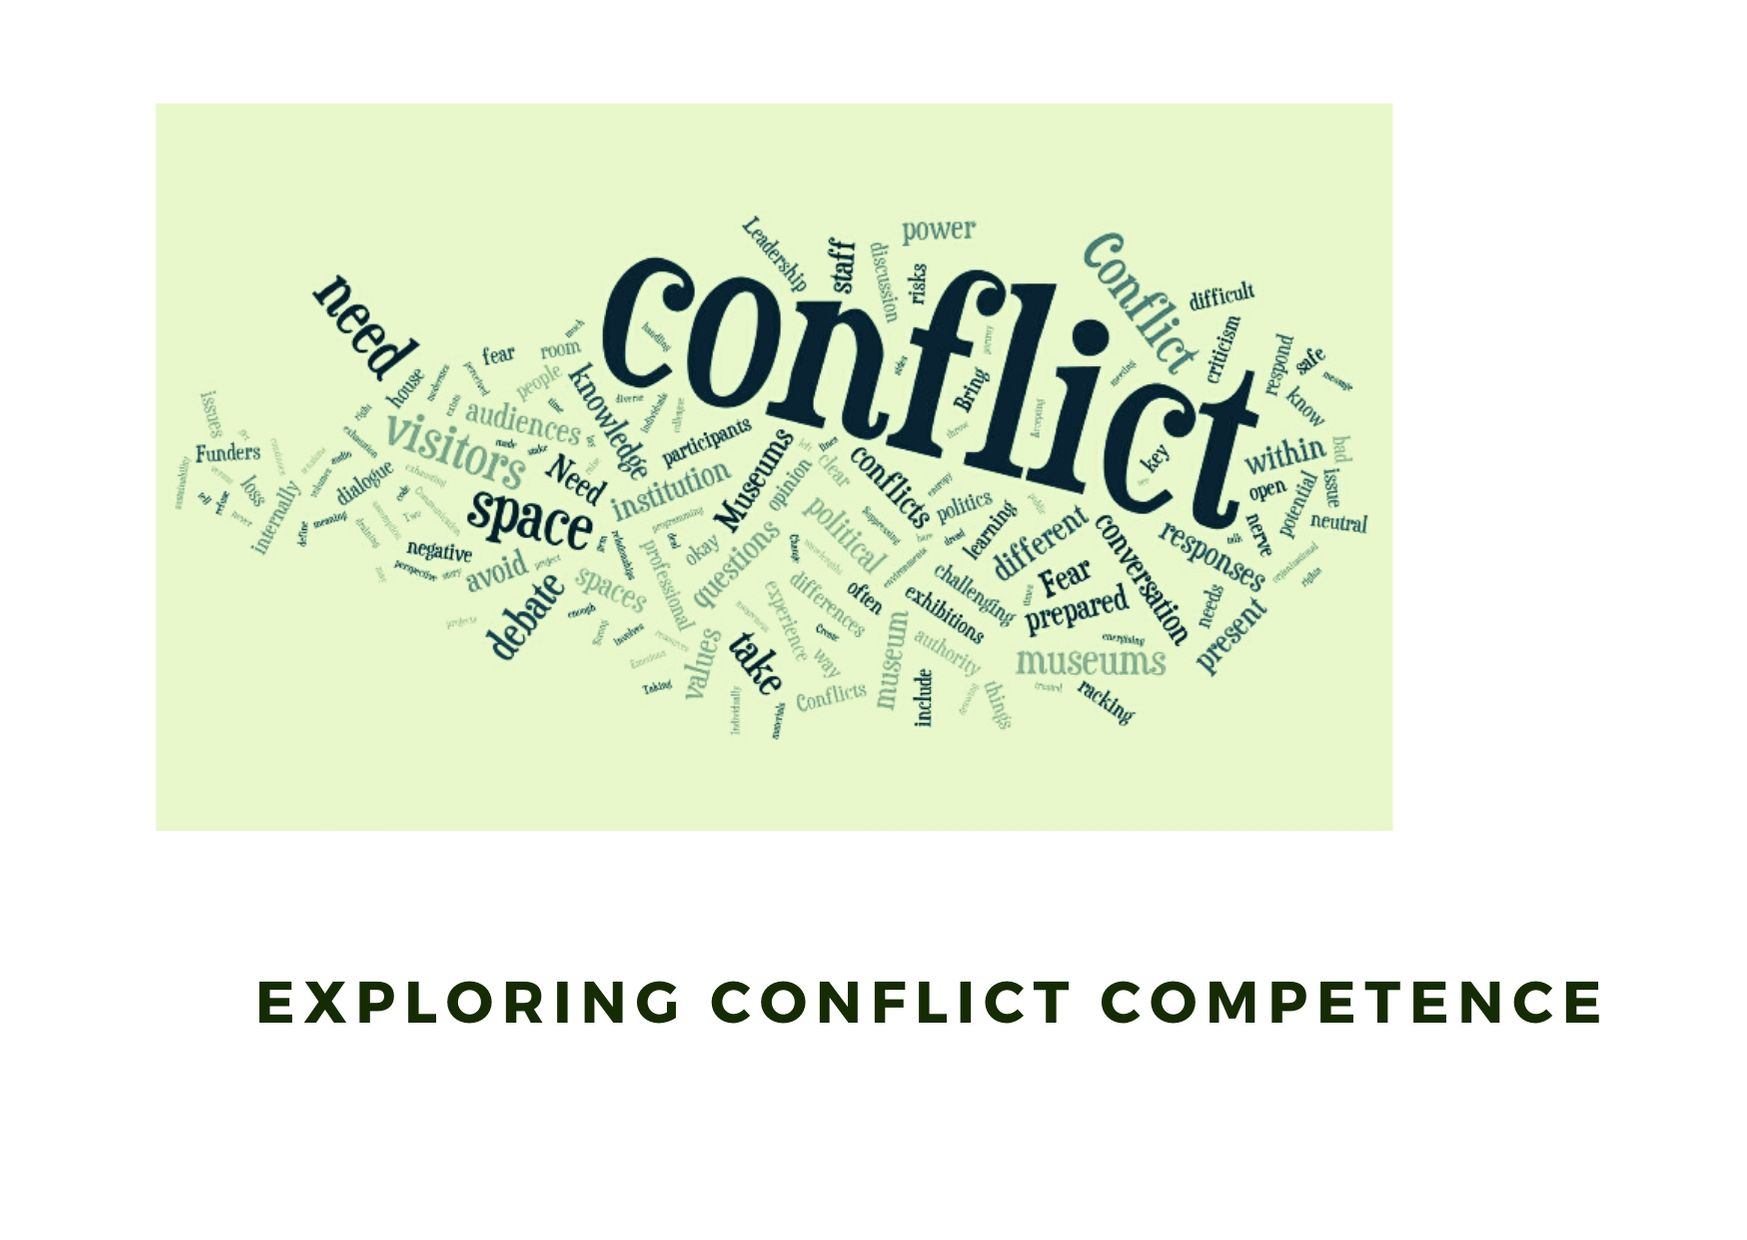 Exploring Conflict Competence